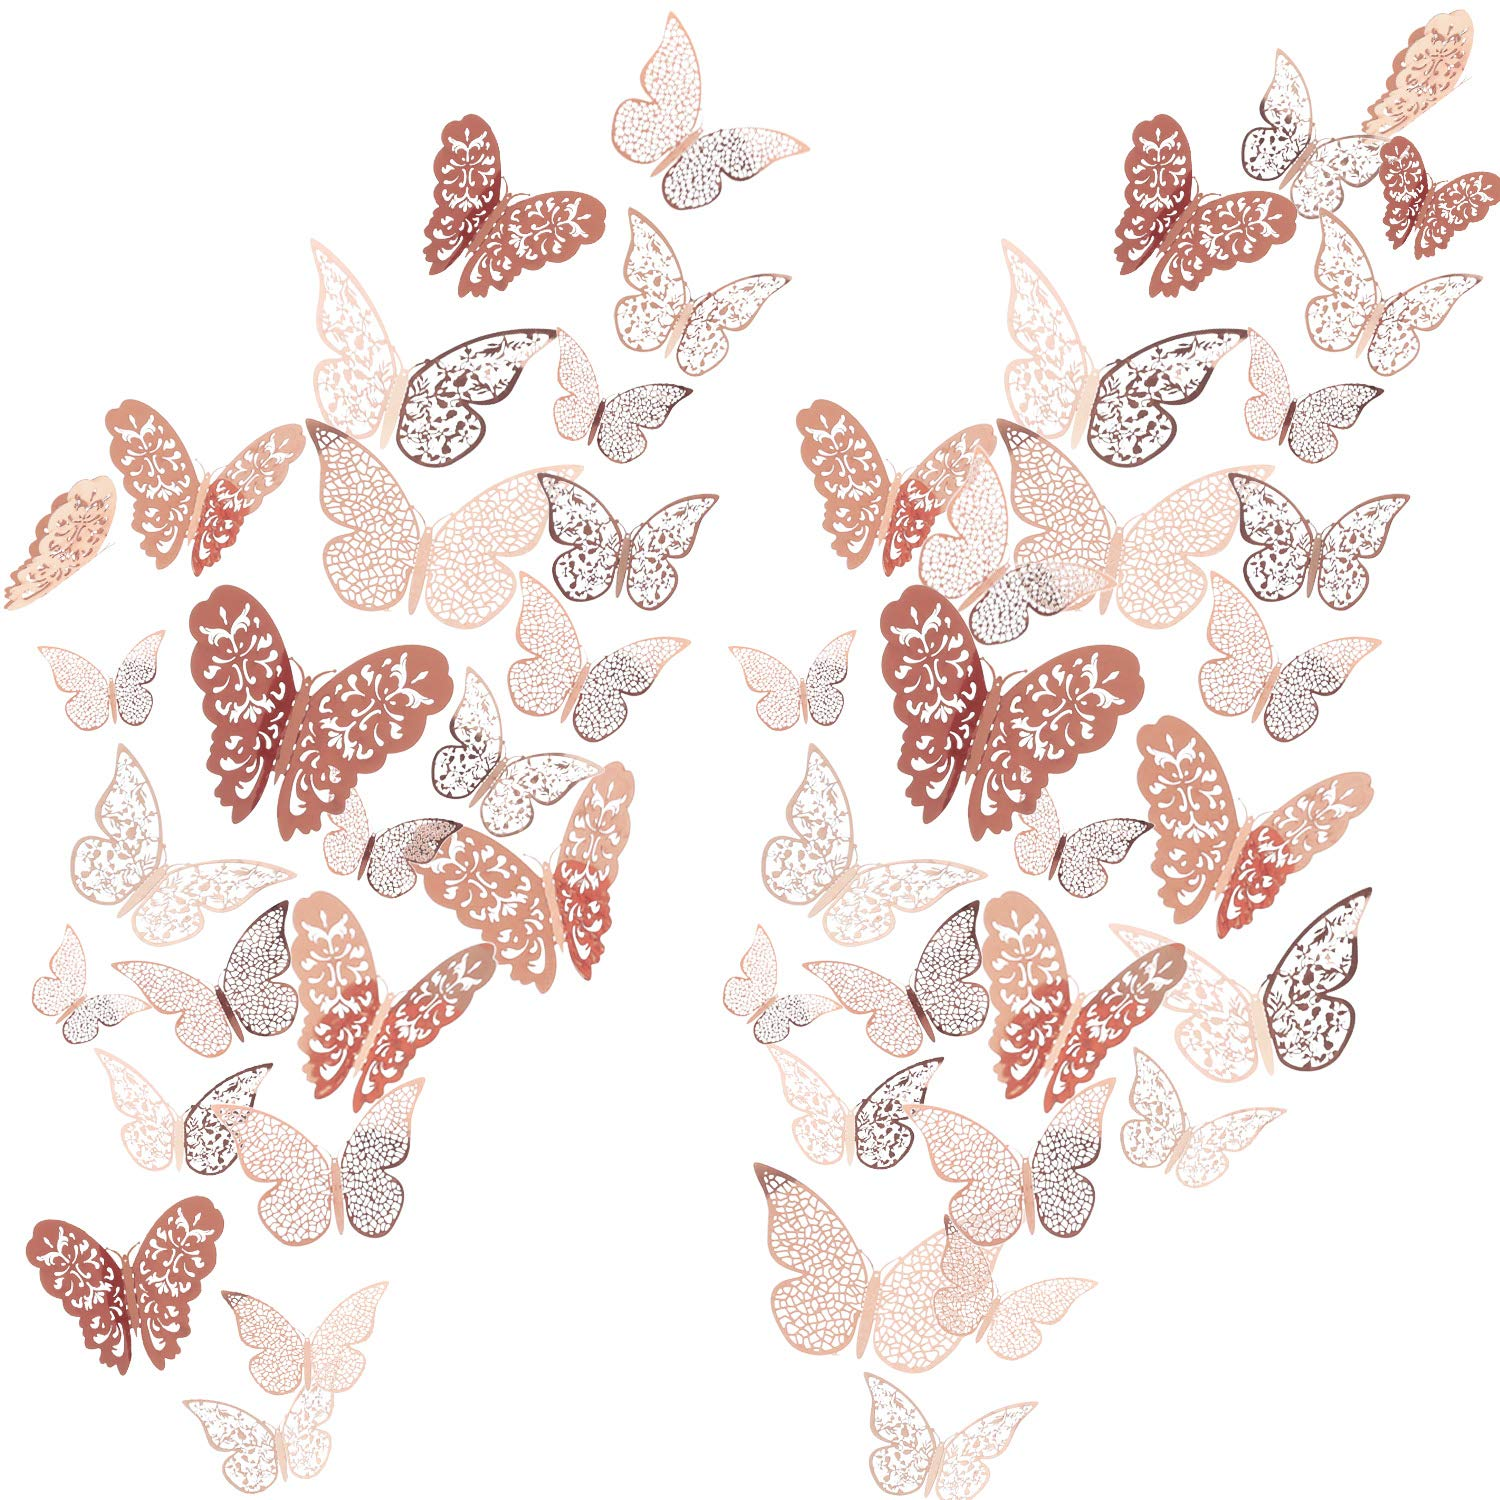 72 Pieces 3D Butterfly Wall Decals Sticker Wall Decal Decor Art Decorations Sticker Set 3 Sizes for Room Home Nursery Classroom Offices Kids Girl Boy Bedroom Bathroom Living Room Decor (Rose Gold) by Bememo